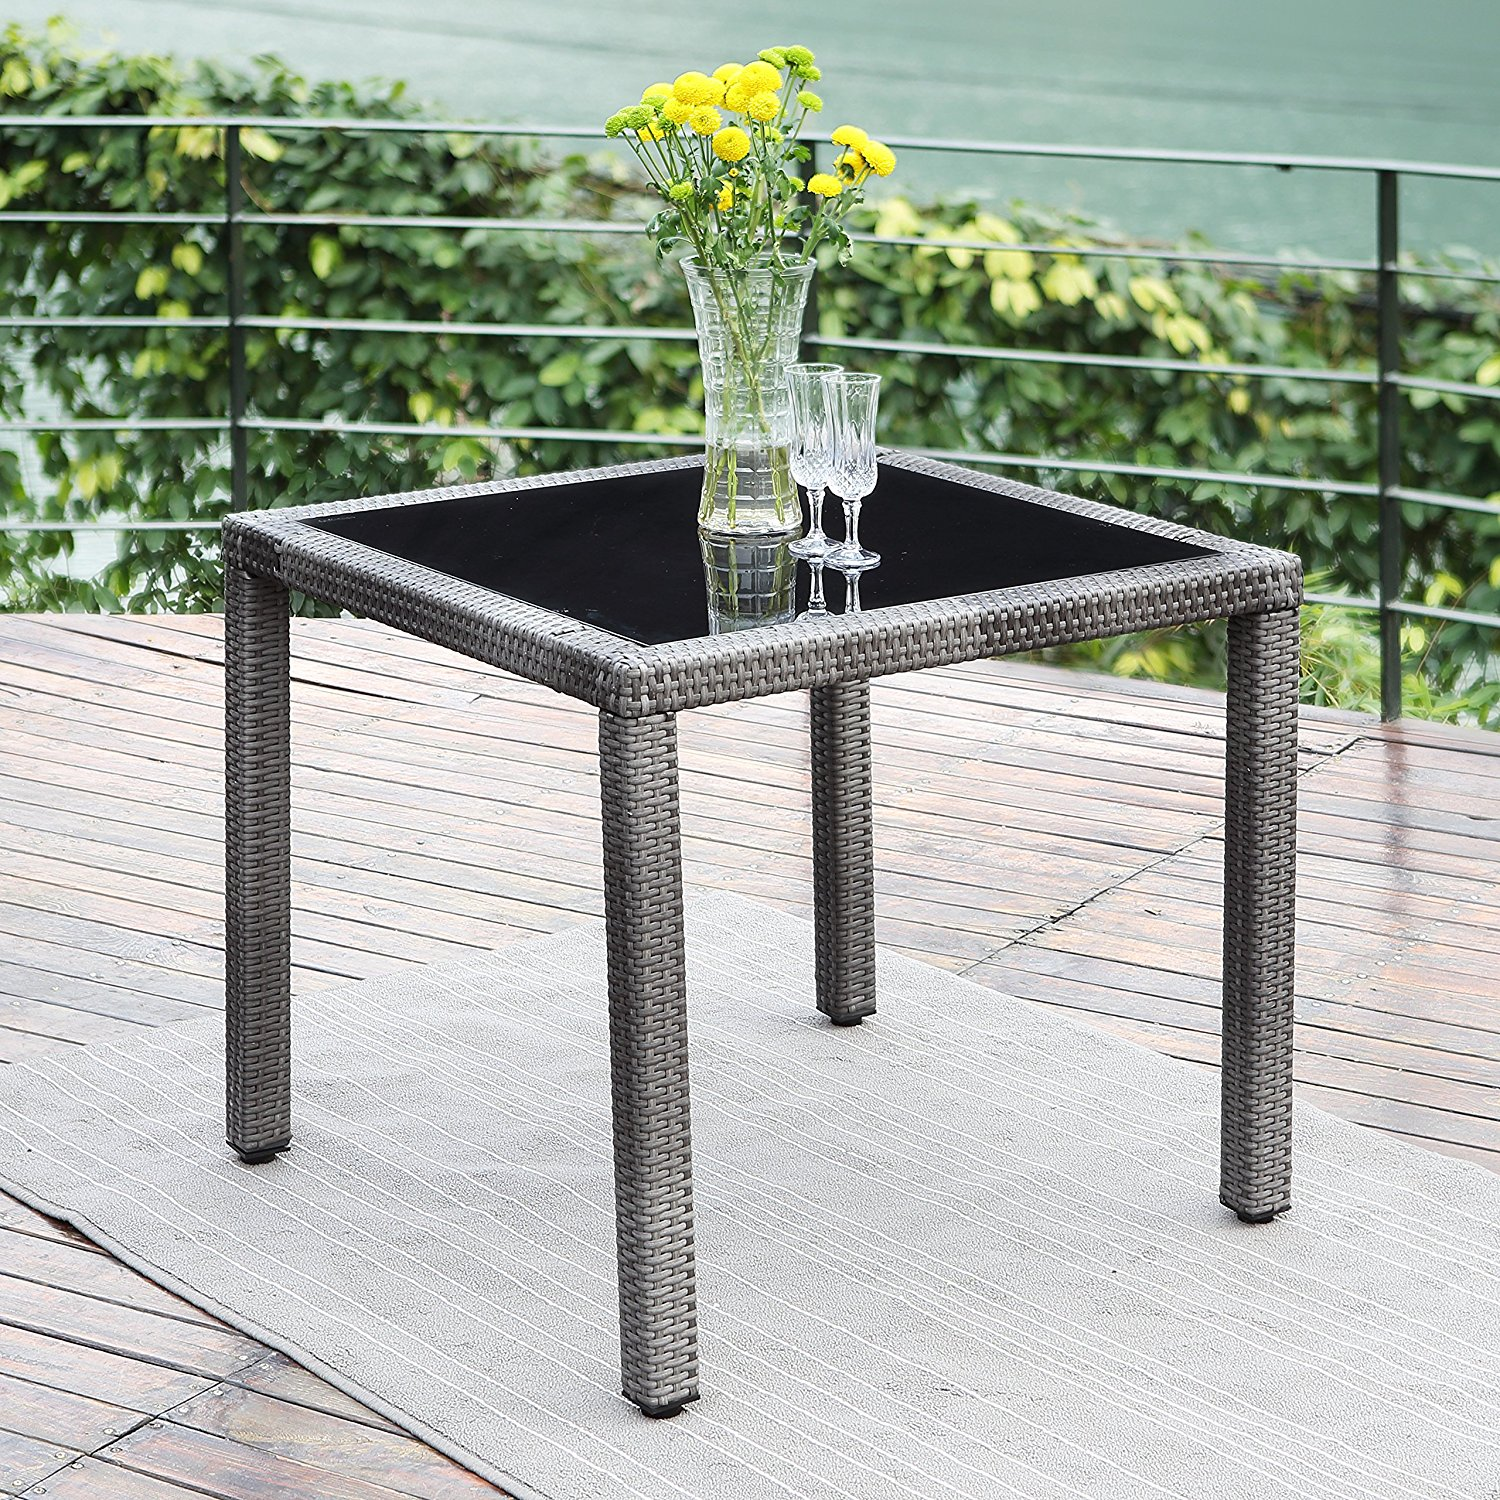 Dazzling Versatile Outdoor Wisteria Lane Wicker Rattan Patio Table Wisteria Lane Wicker Rattan Patio Table Review Patio Patio Table Cover Patio Table Bench houzz 01 Patio Dining Table